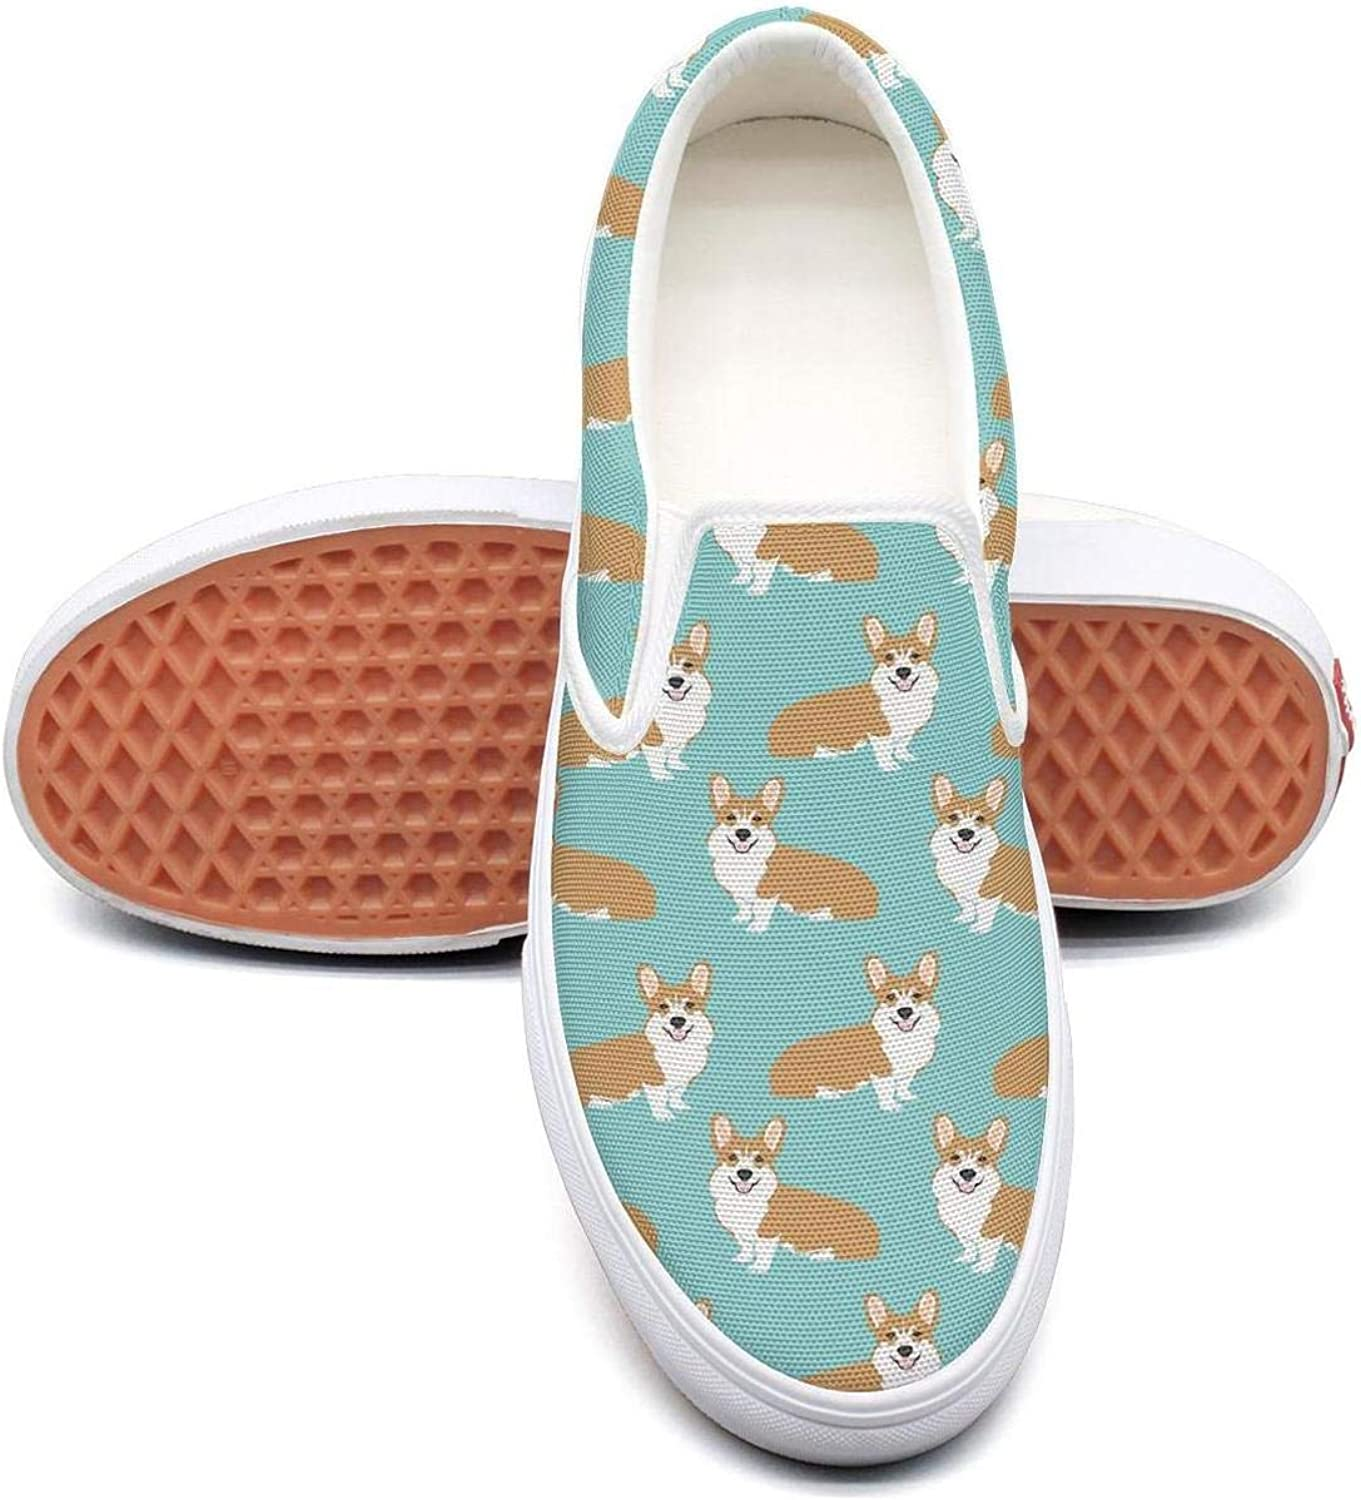 Corgi Welsh Corgi Gifts Womens Flat Slip on Low Top Canvas Boat shoes